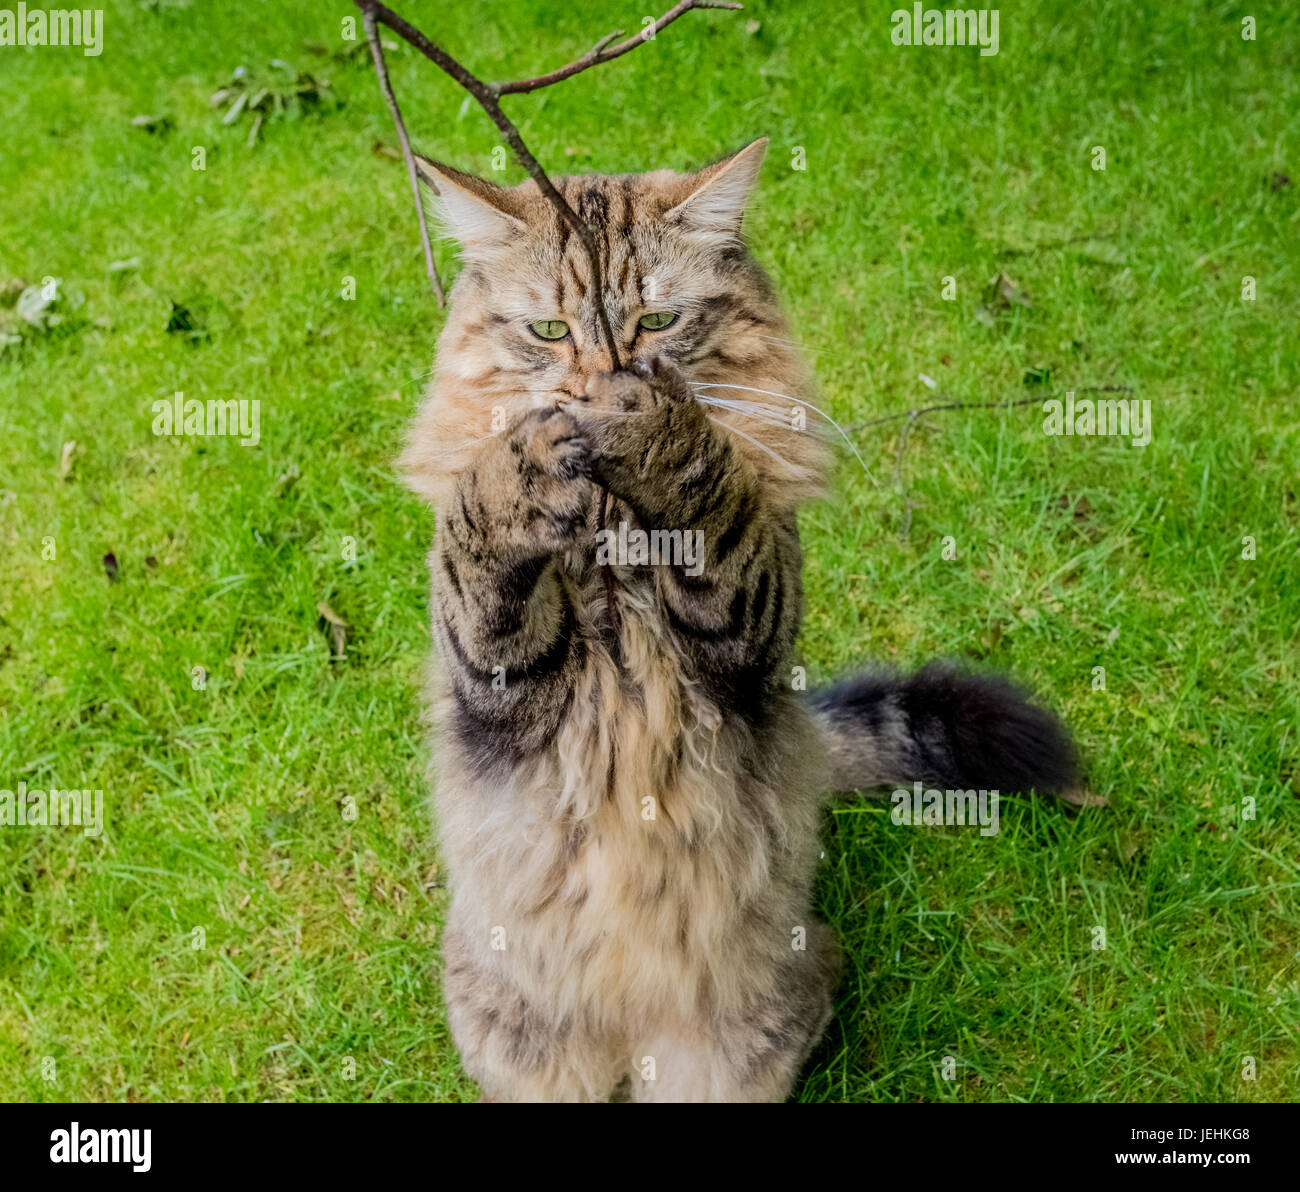 Long Haired Tabby Cat Standing Up On Two Legs Holding On To A Tree Branch. - Stock Image